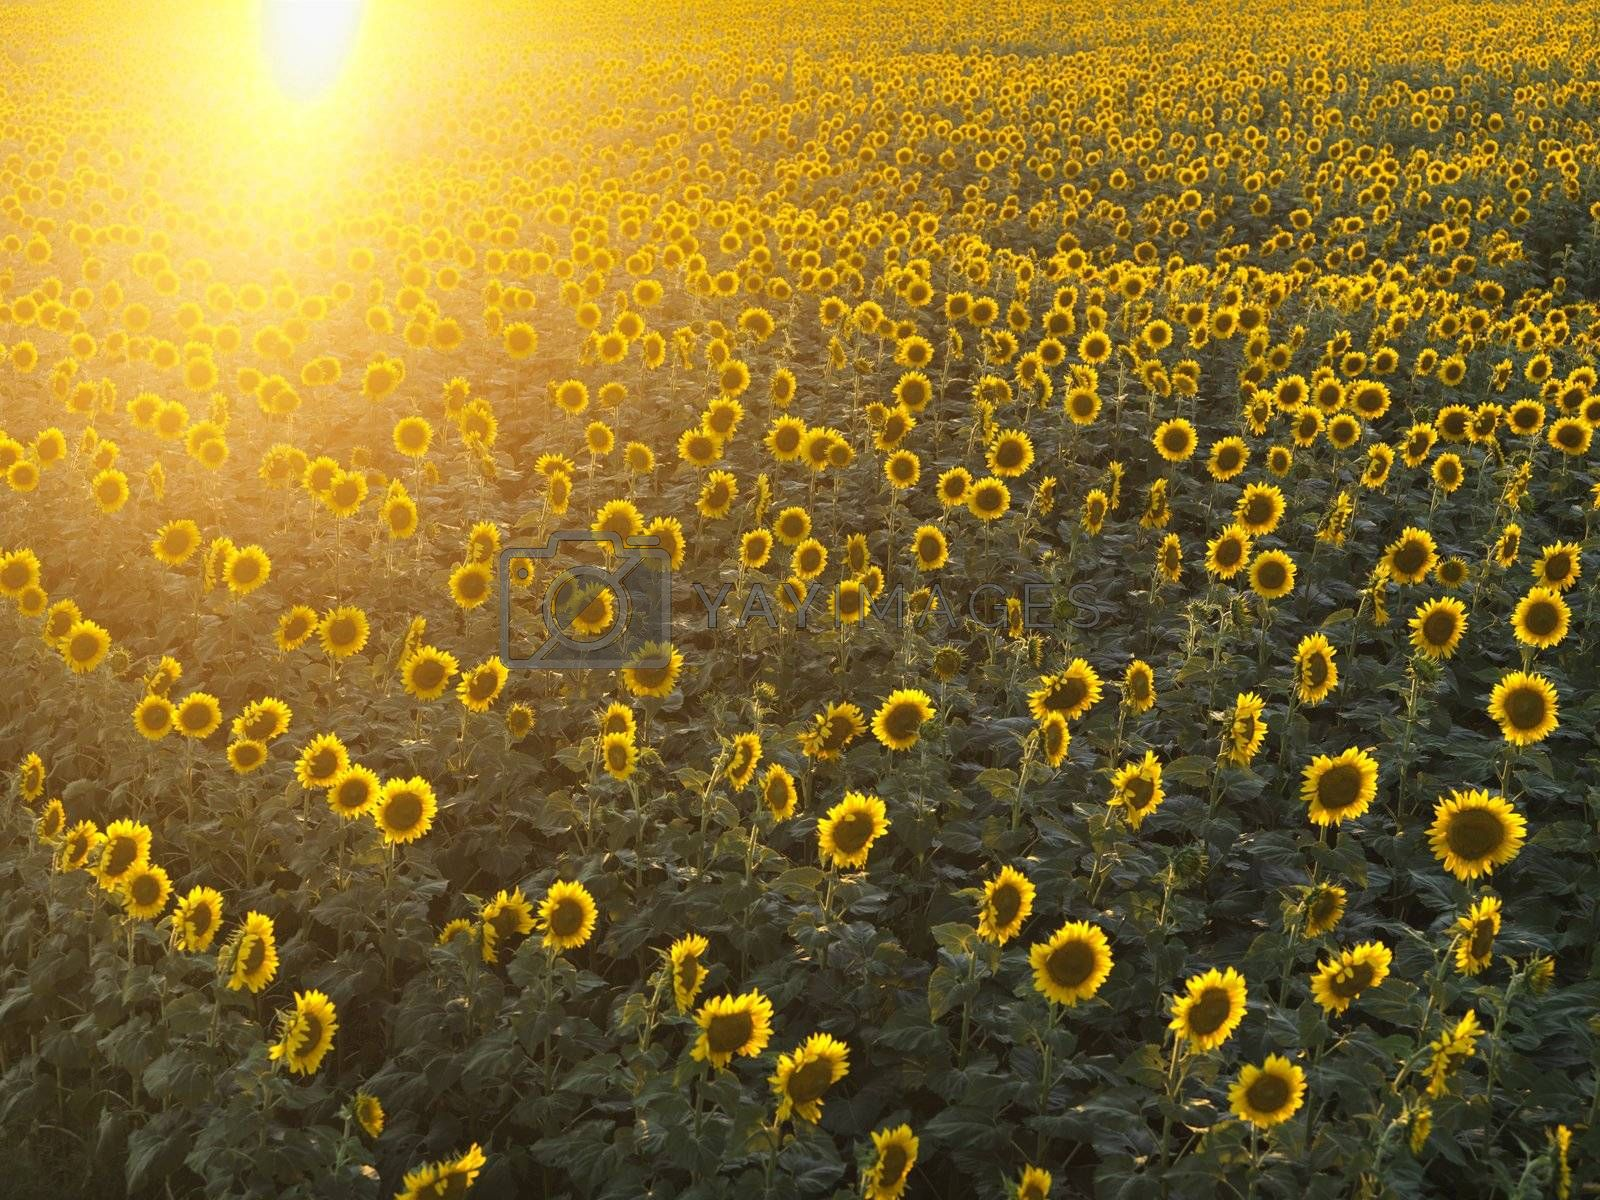 Field of sunflowers with sunshine.